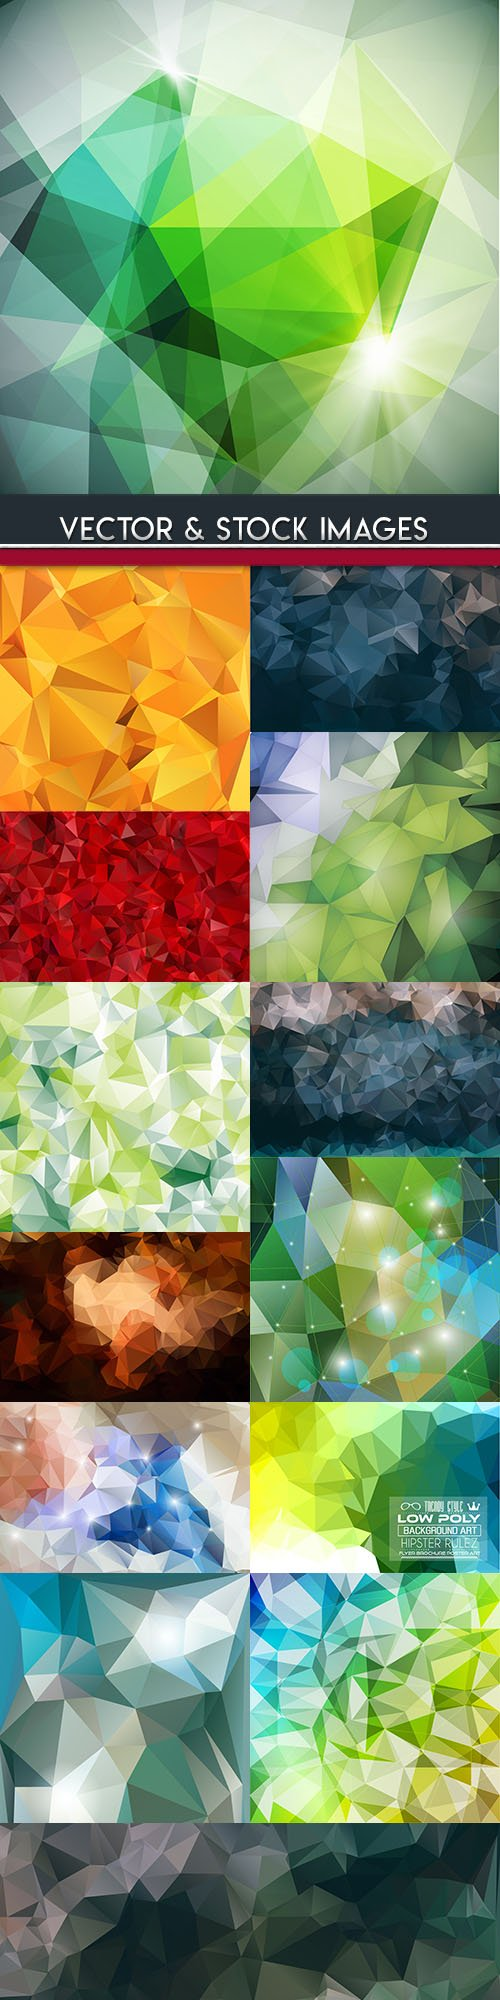 Polygon abstract creative modern background